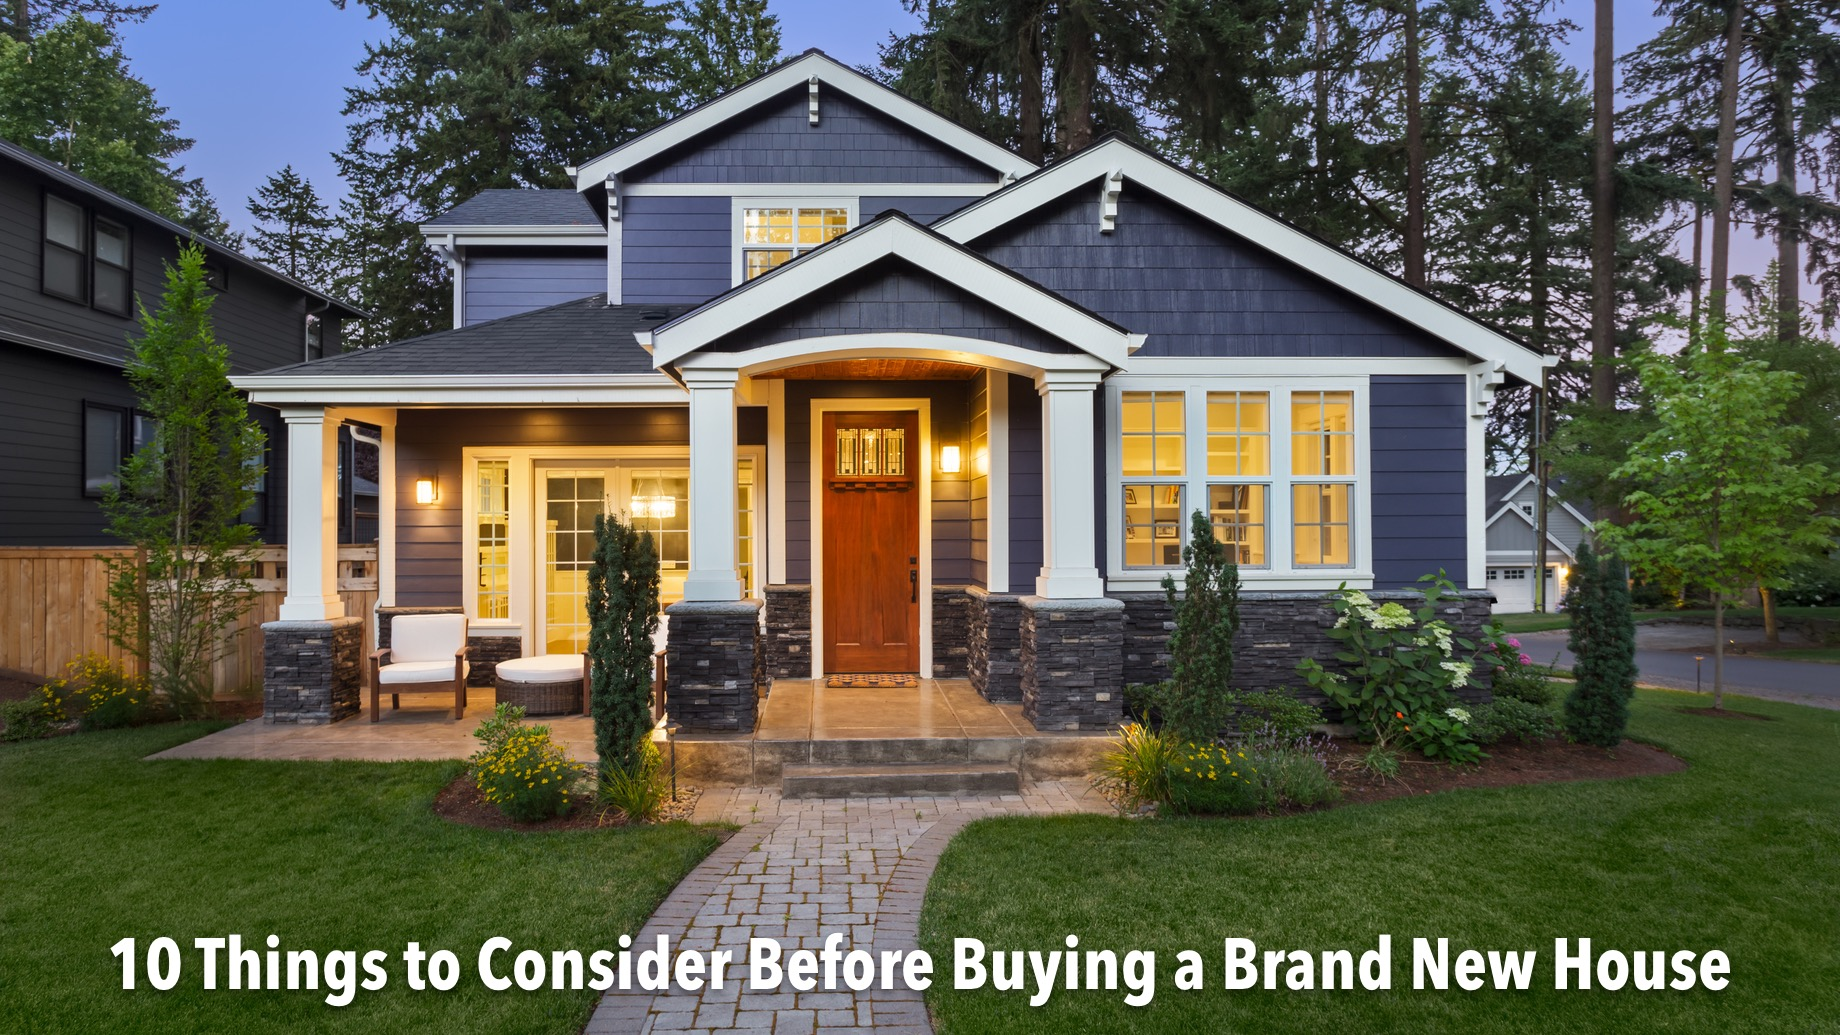 10 Things to Consider Before Buying a Brand New House